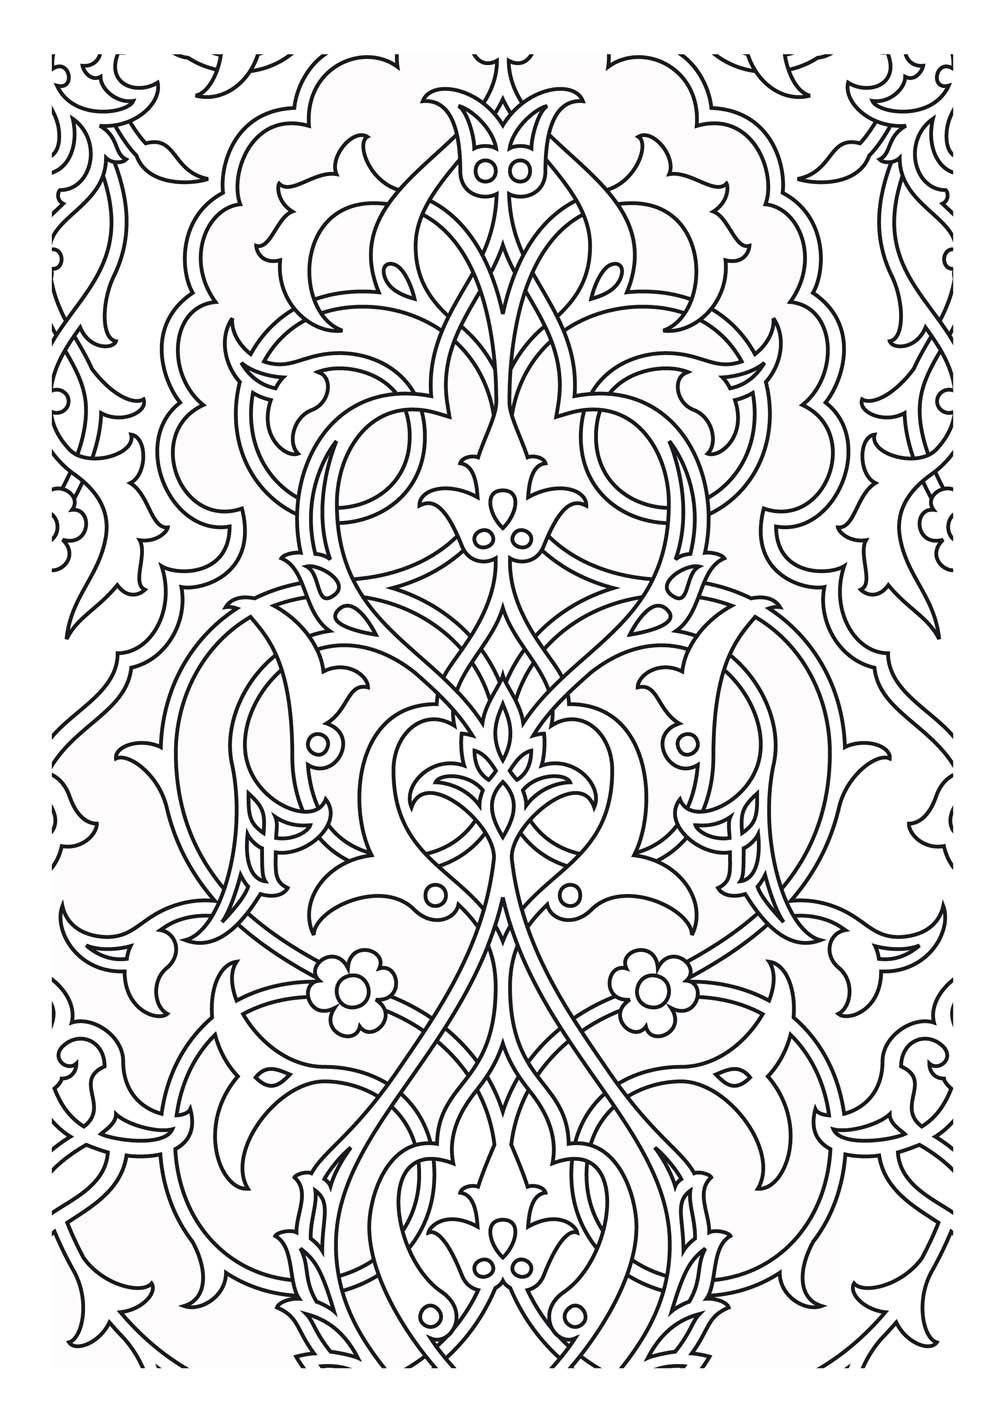 Medieval tapestry pattern, which can serve as an inspiration or for a simple coloring